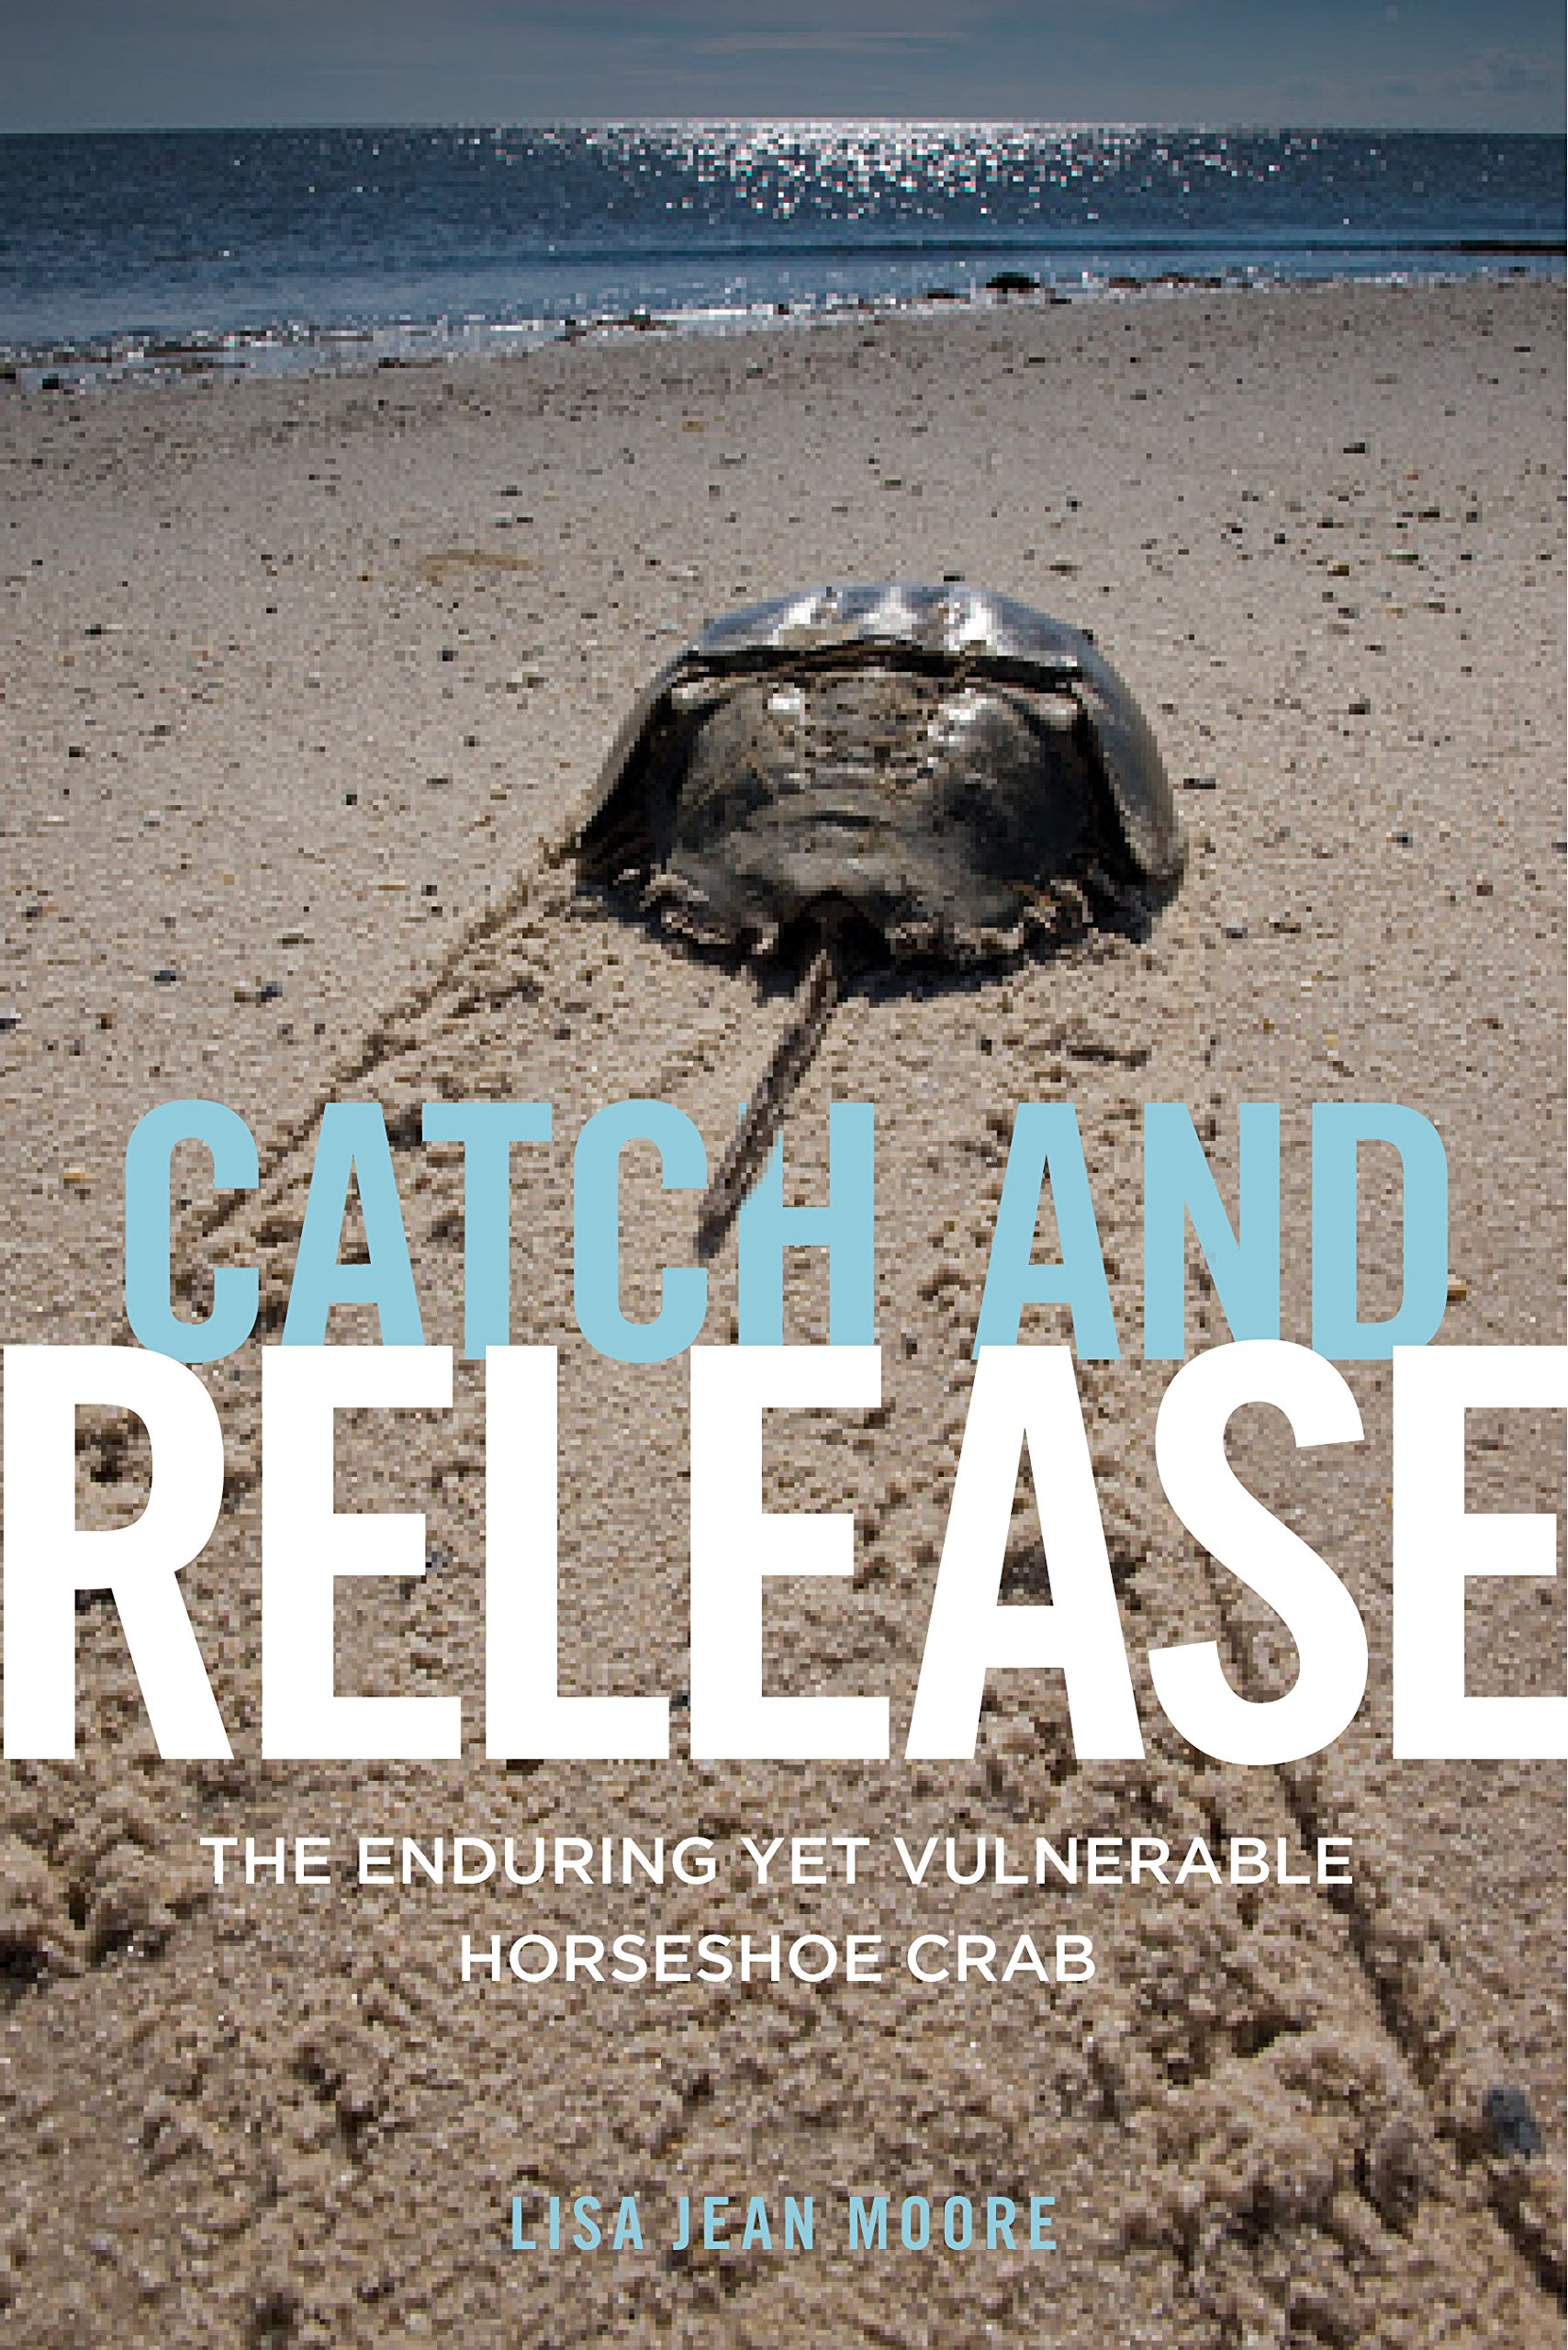 Catch and Release: The Enduring Yet Vulnerable Horseshoe